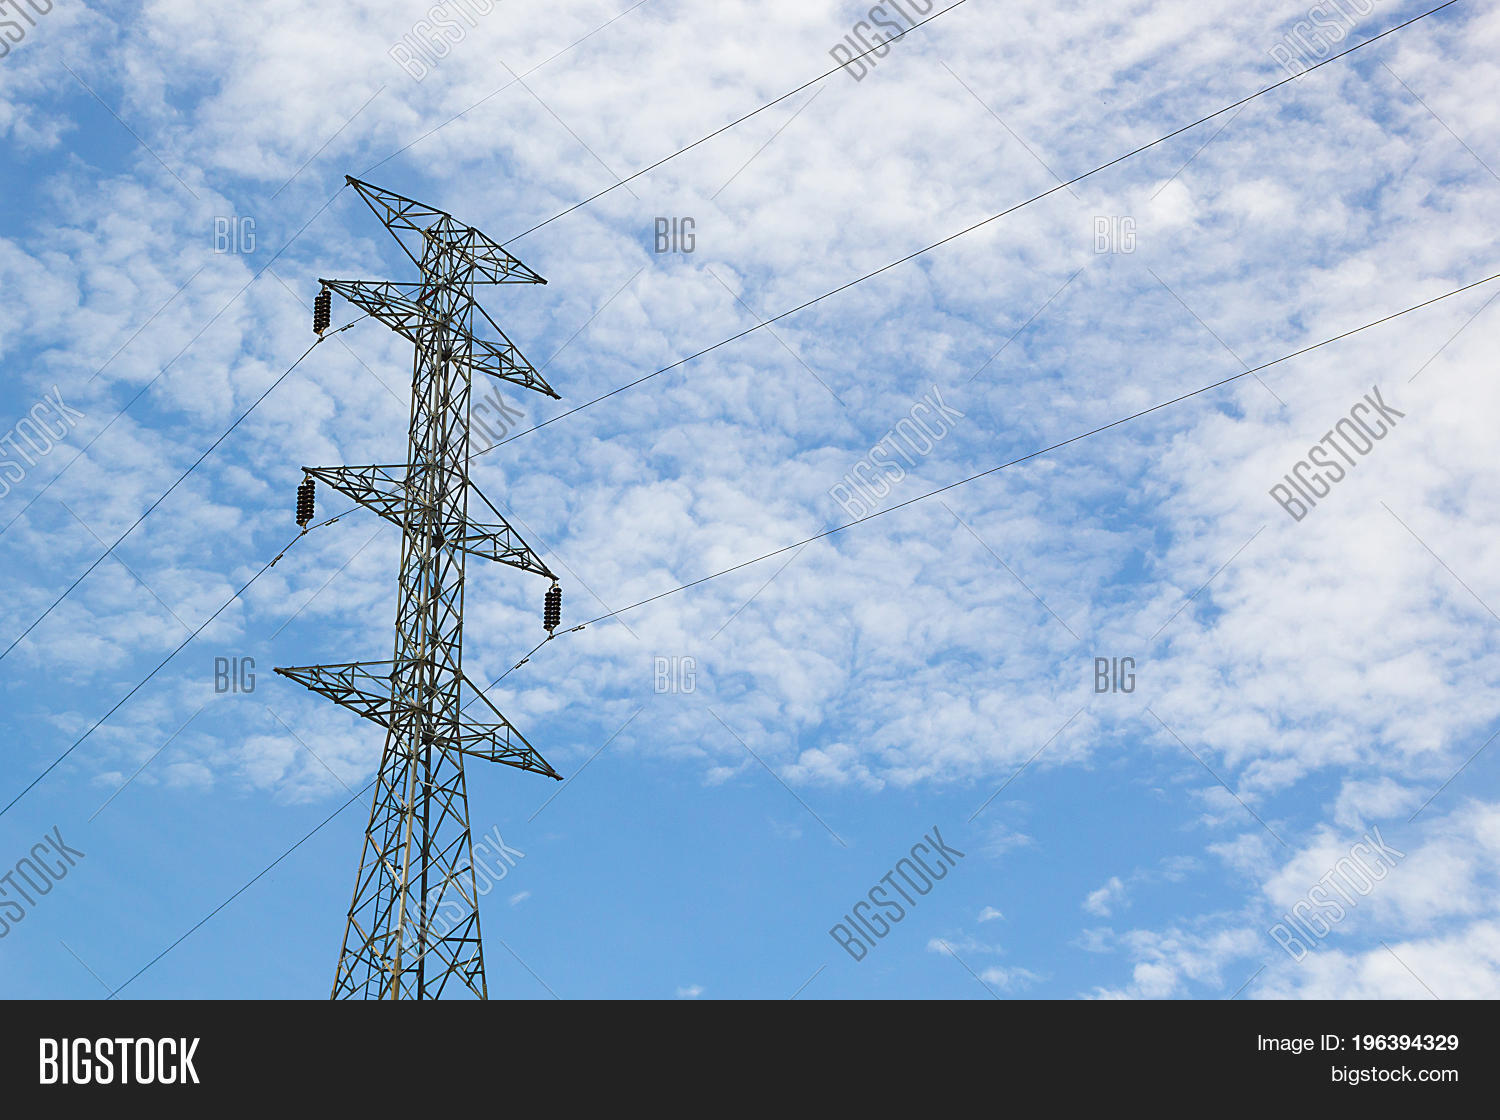 hight resolution of high voltage post high voltage tower at blue sky and cloud background power poles and